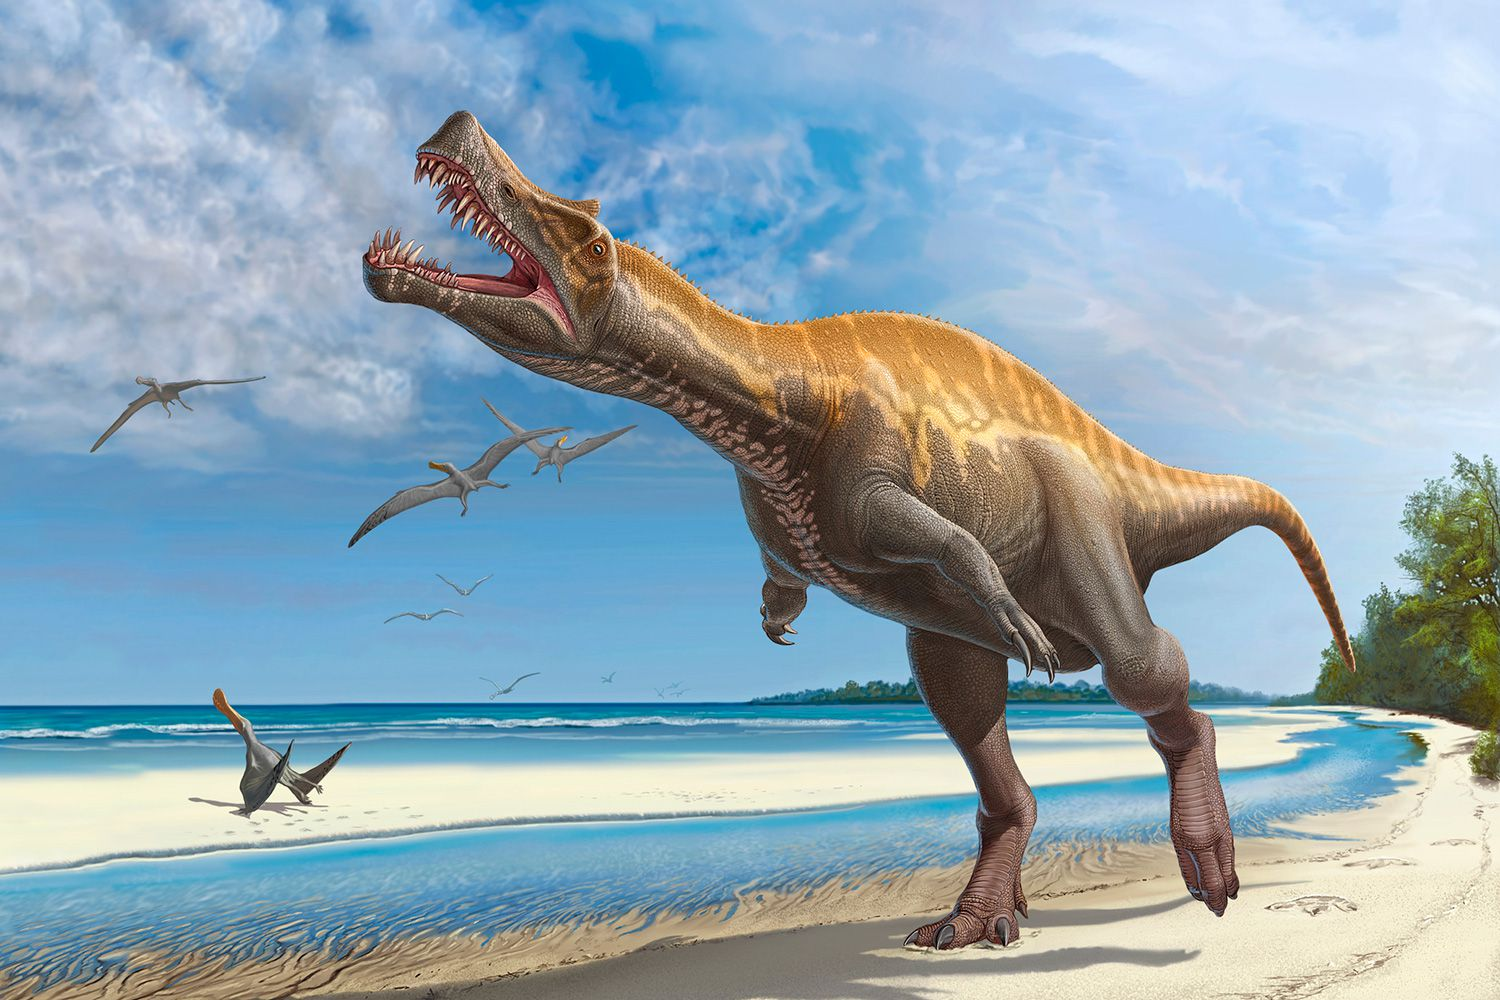 The 10 Most Important Dinosaur Facts